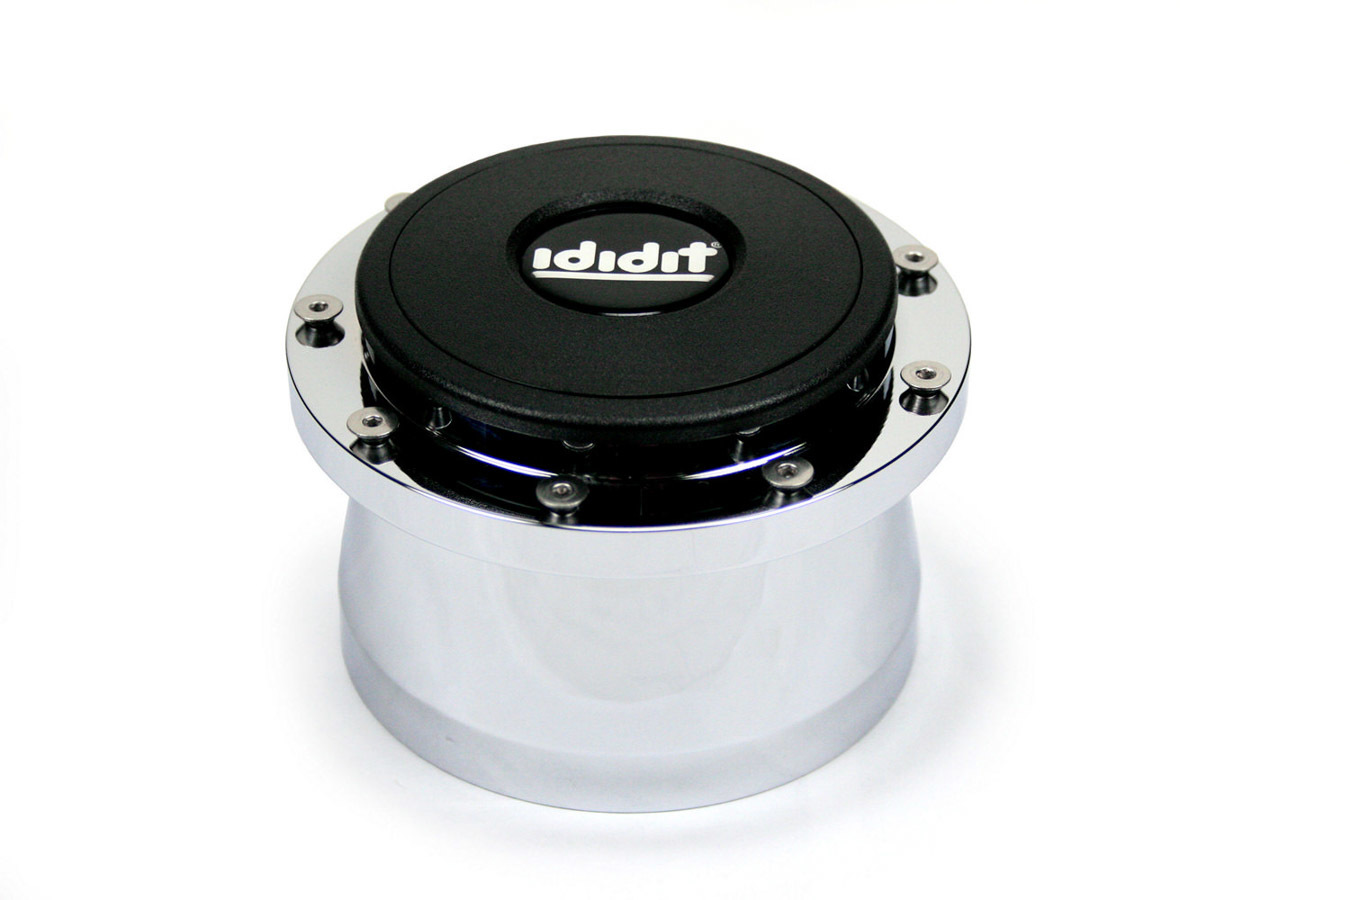 Adaptor 9 Bolt with Horn Button Brushed